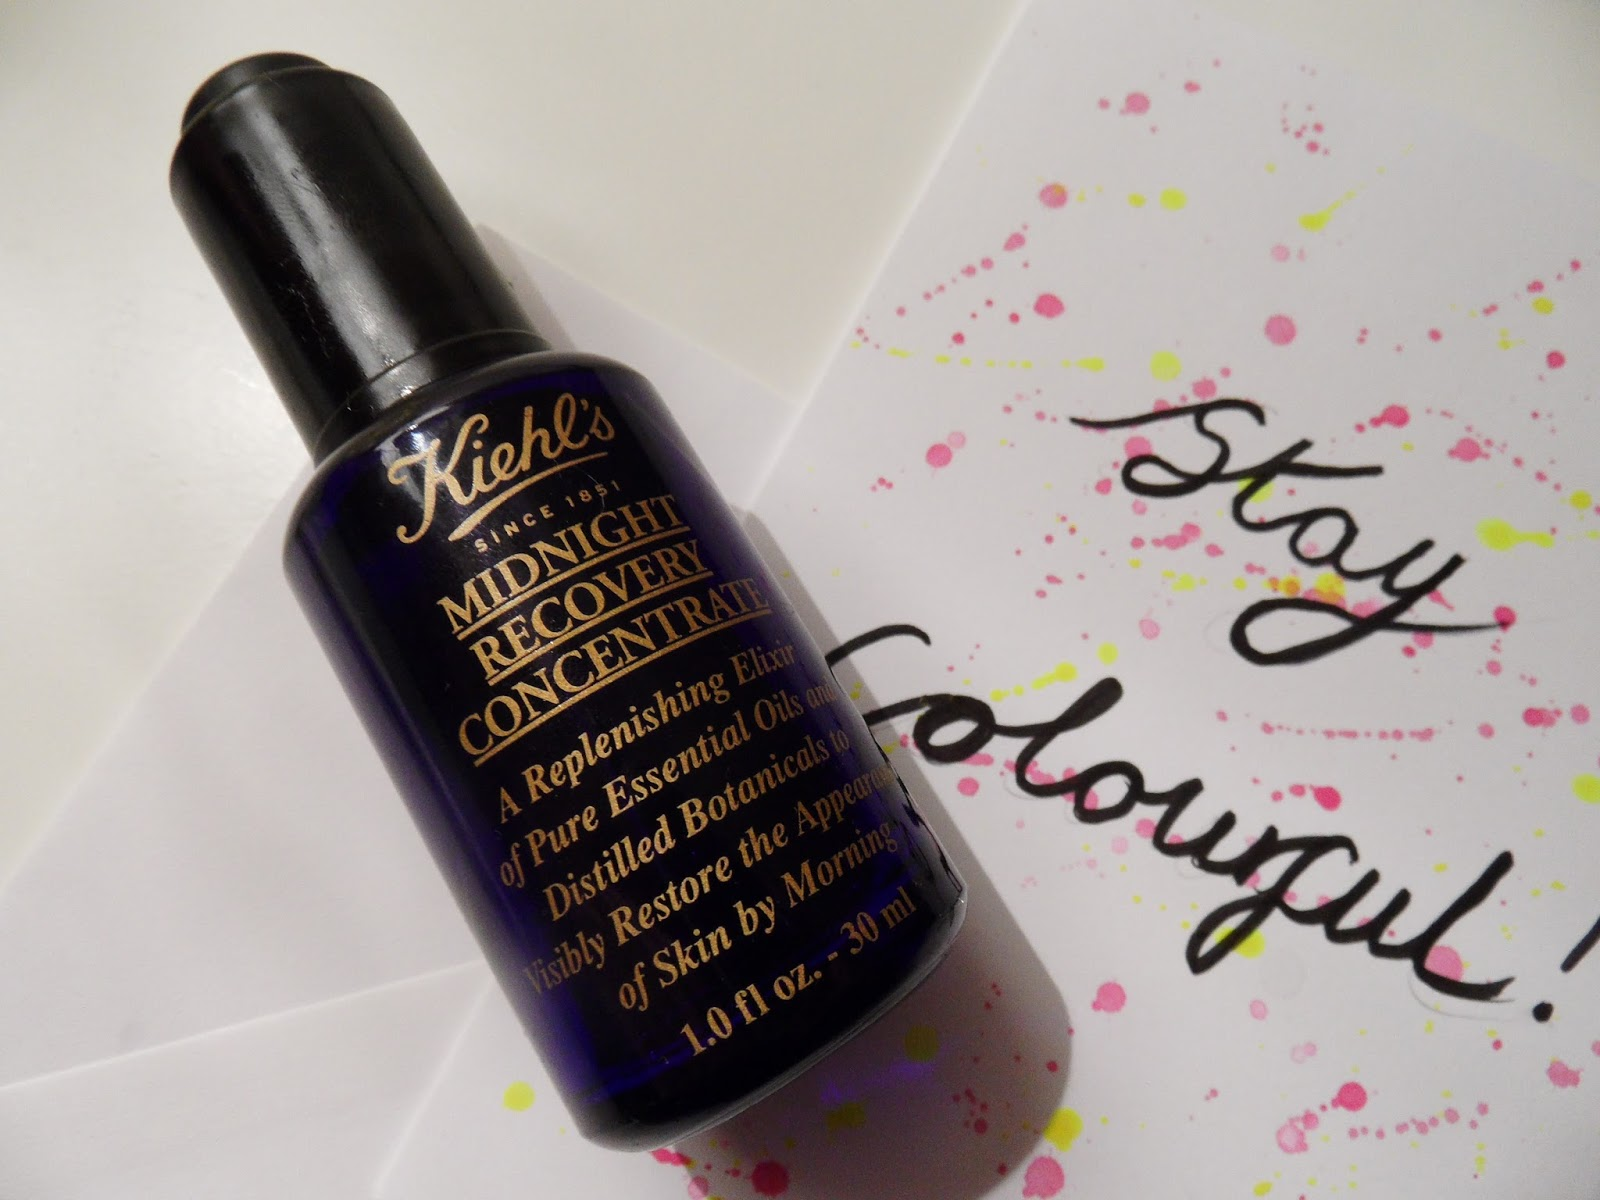 KIEHLS MIDNIGHT RECOVERY REVIEW EYELINERFLICKS.COM